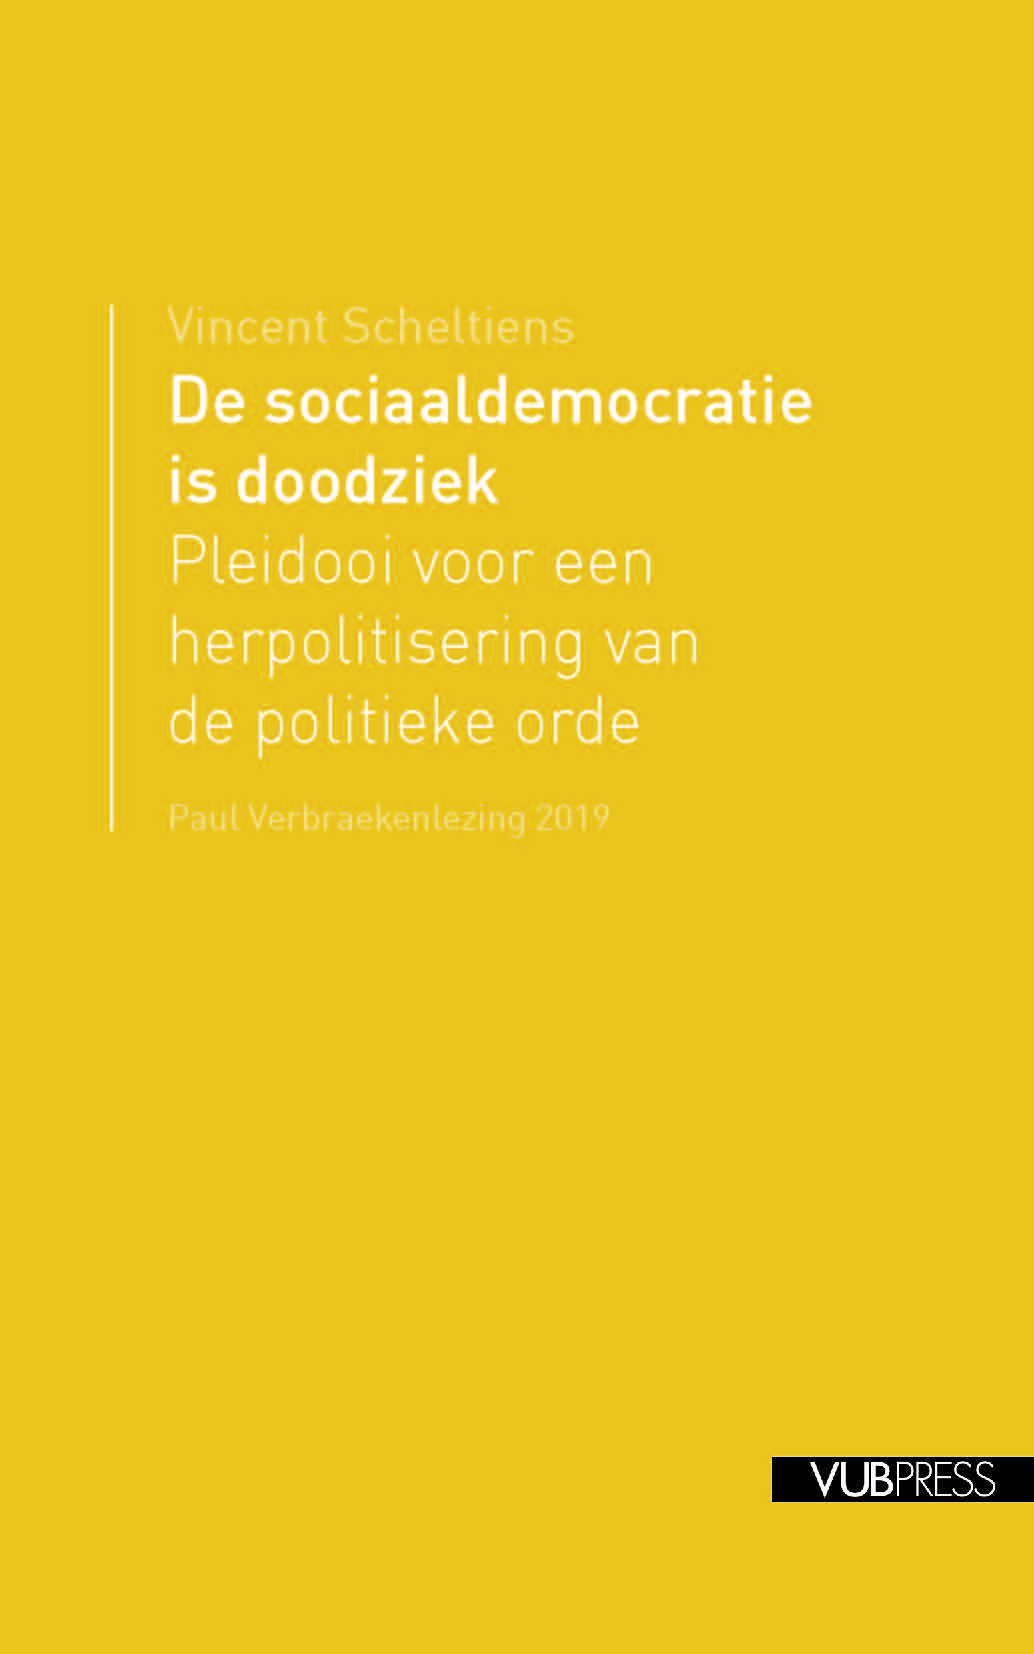 DE SOCIAALDEMOCRATIE IS DOODZIEK (Paul Verbraekenlezing 2019)